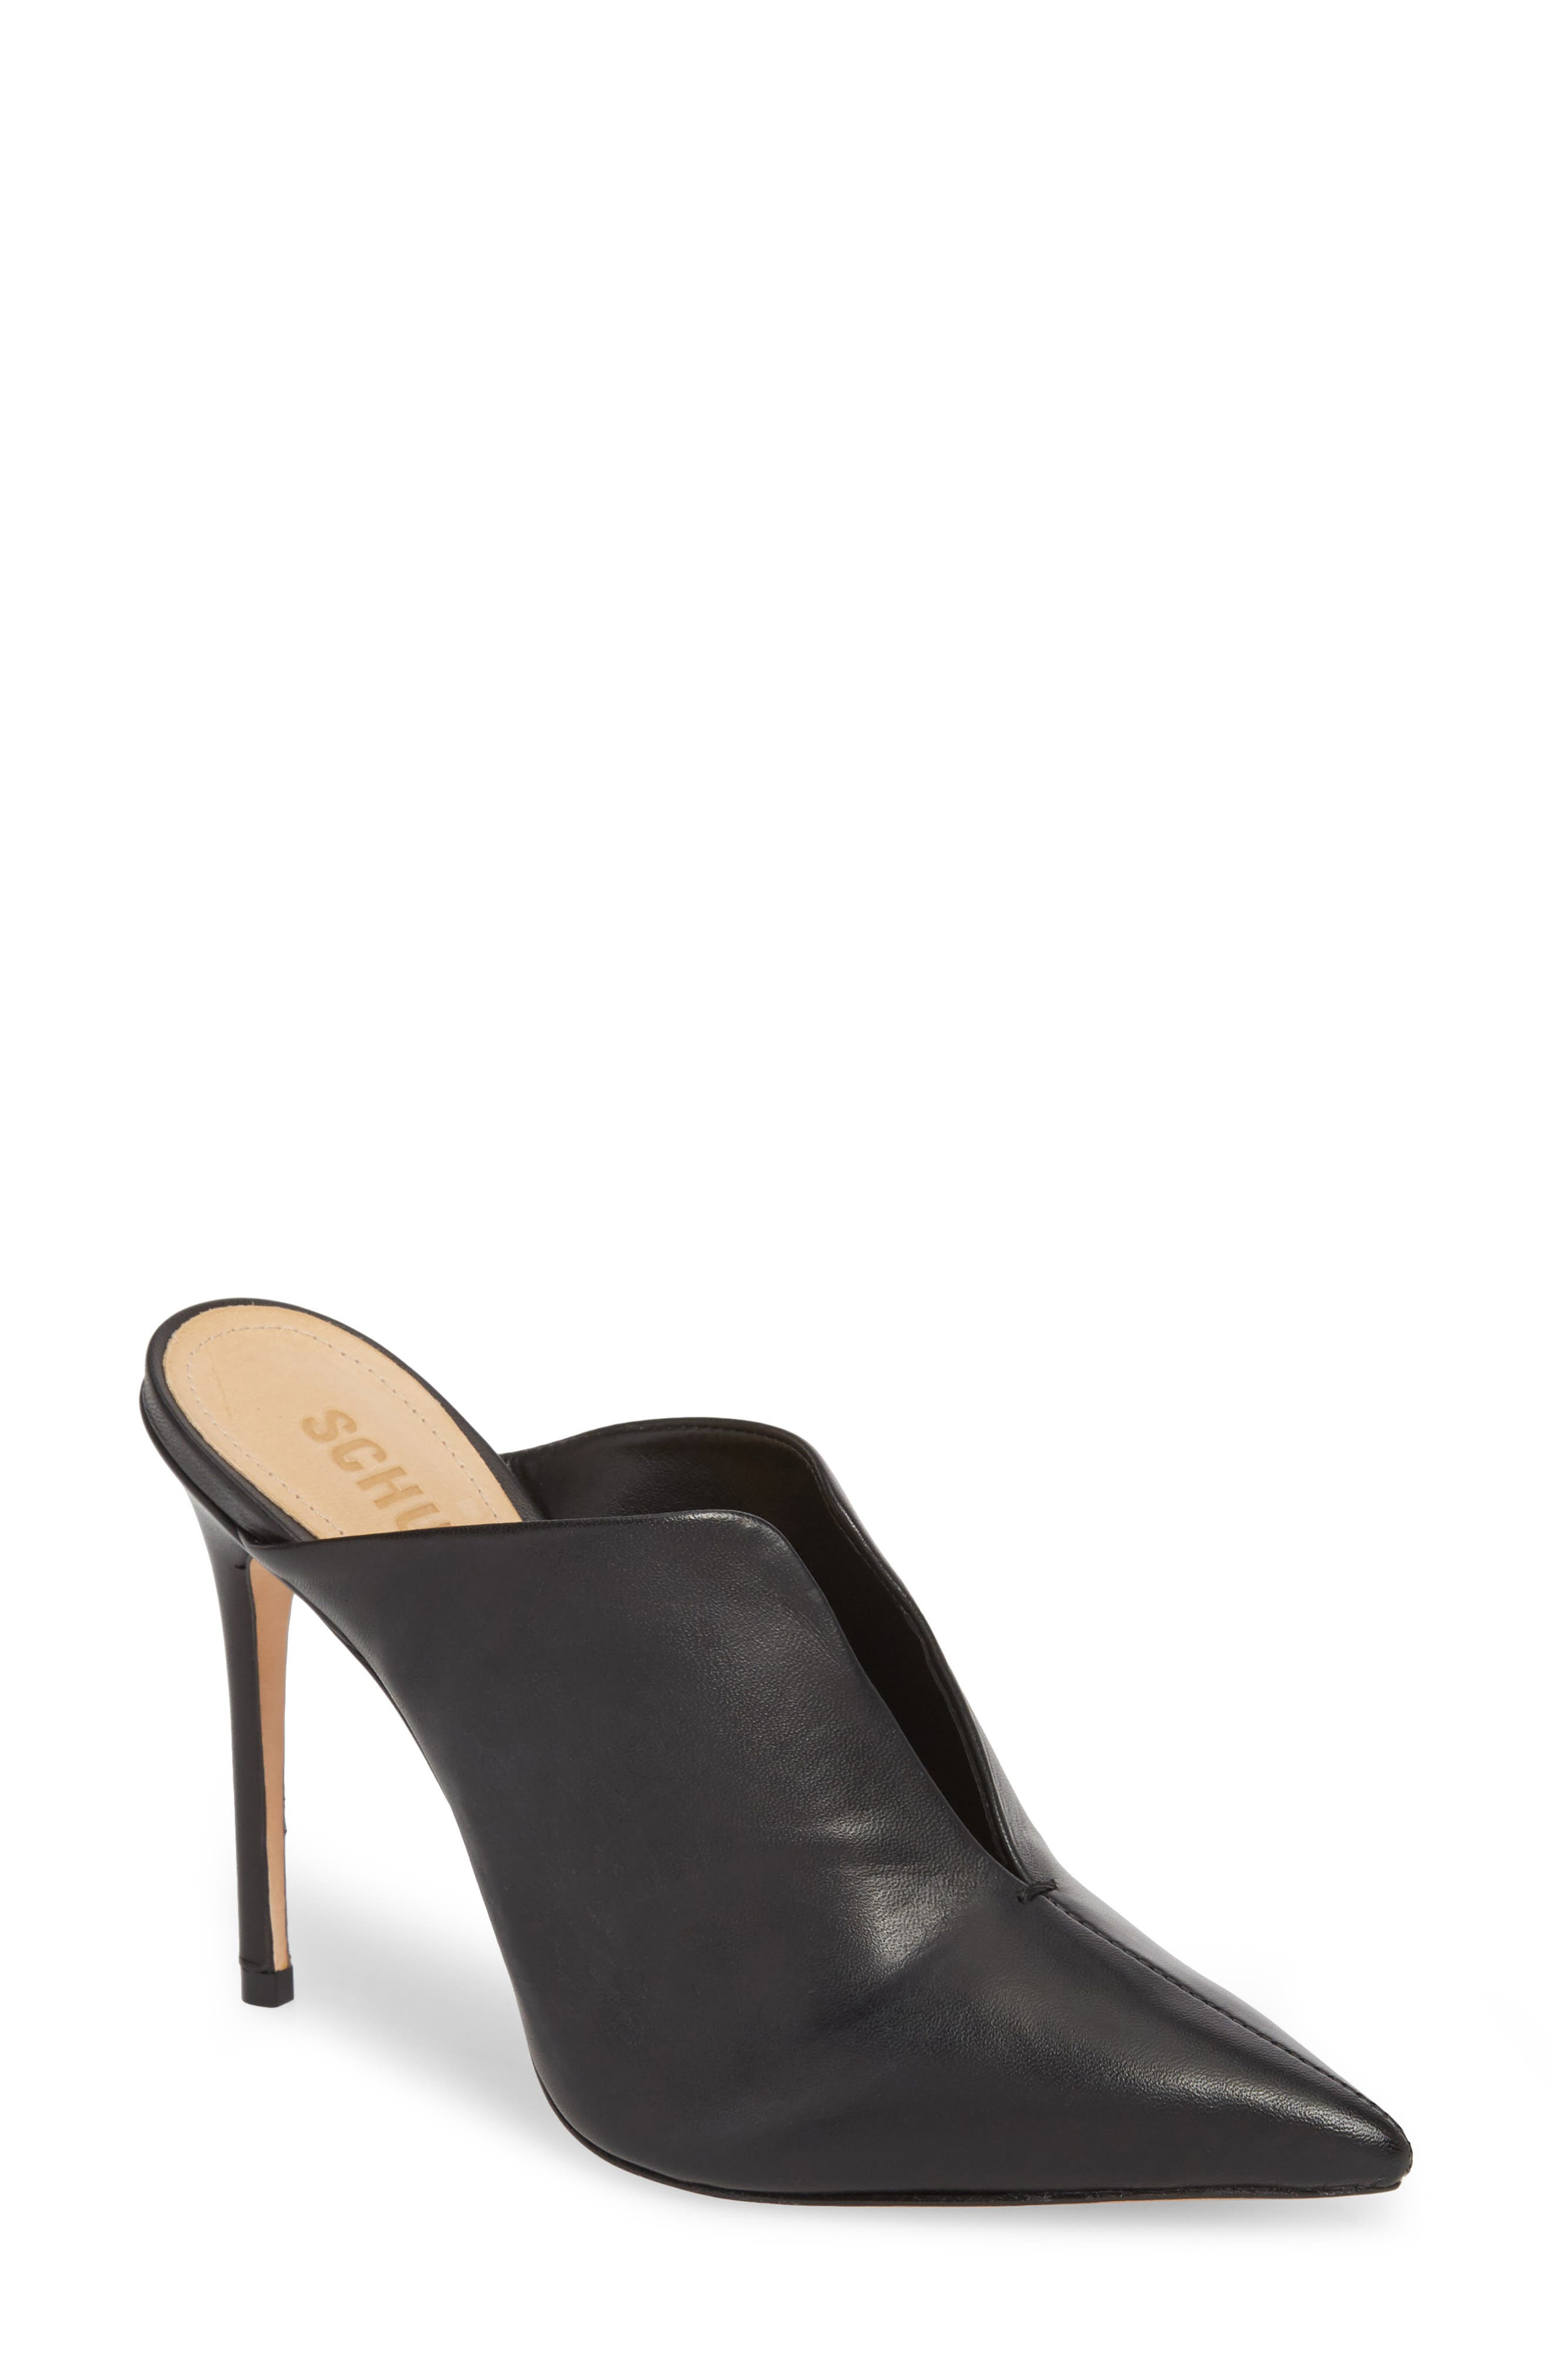 Docia Mule,                         Main,                         color, BLACK LEATHER